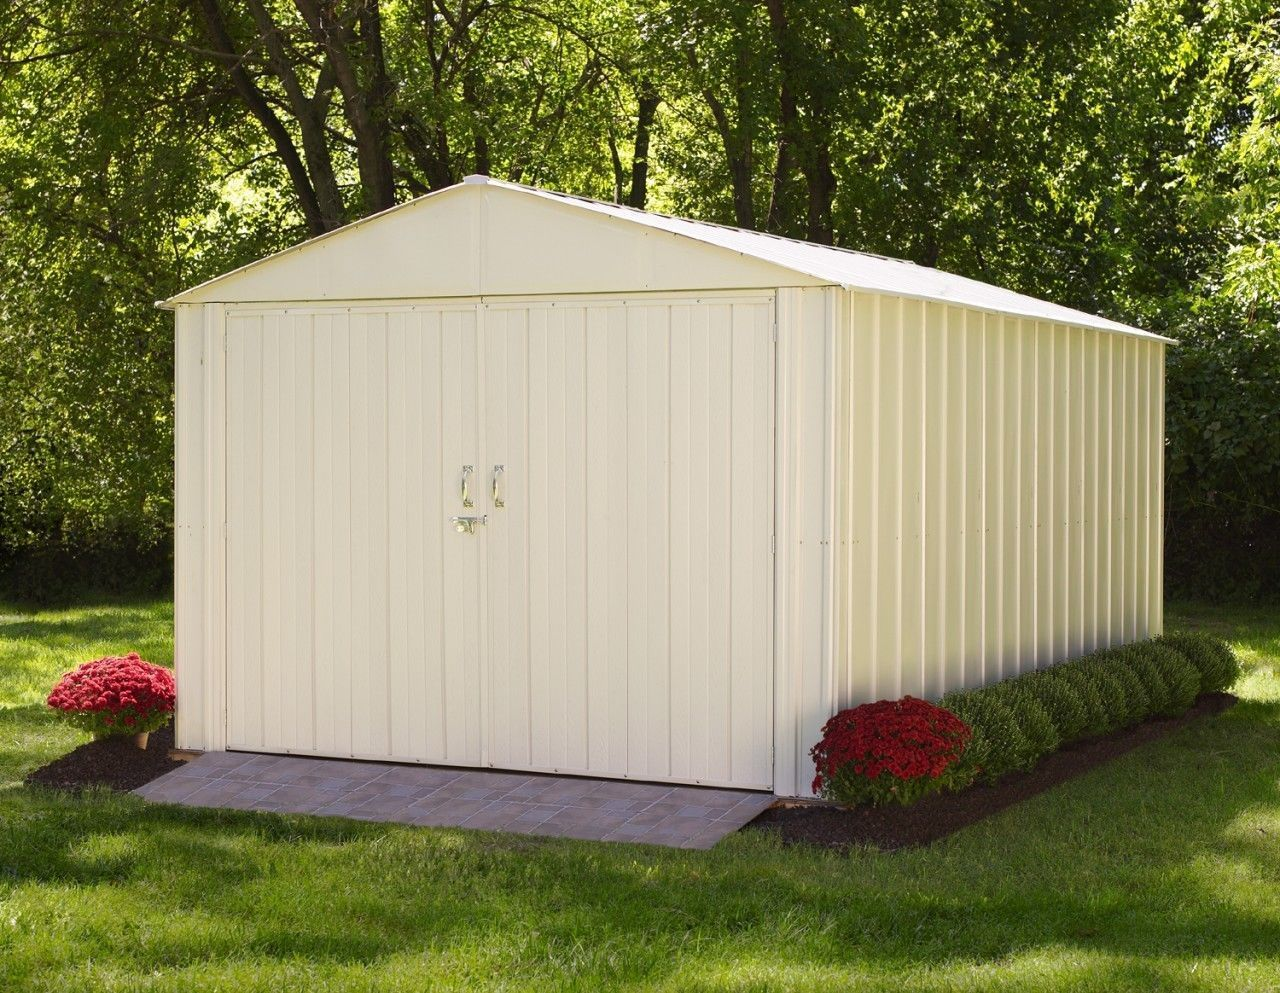 Rubbermaid Storage Sheds | Rubbermaid Slide-lid Storage Shed | Home Depot Rubbermaid Storage Sheds